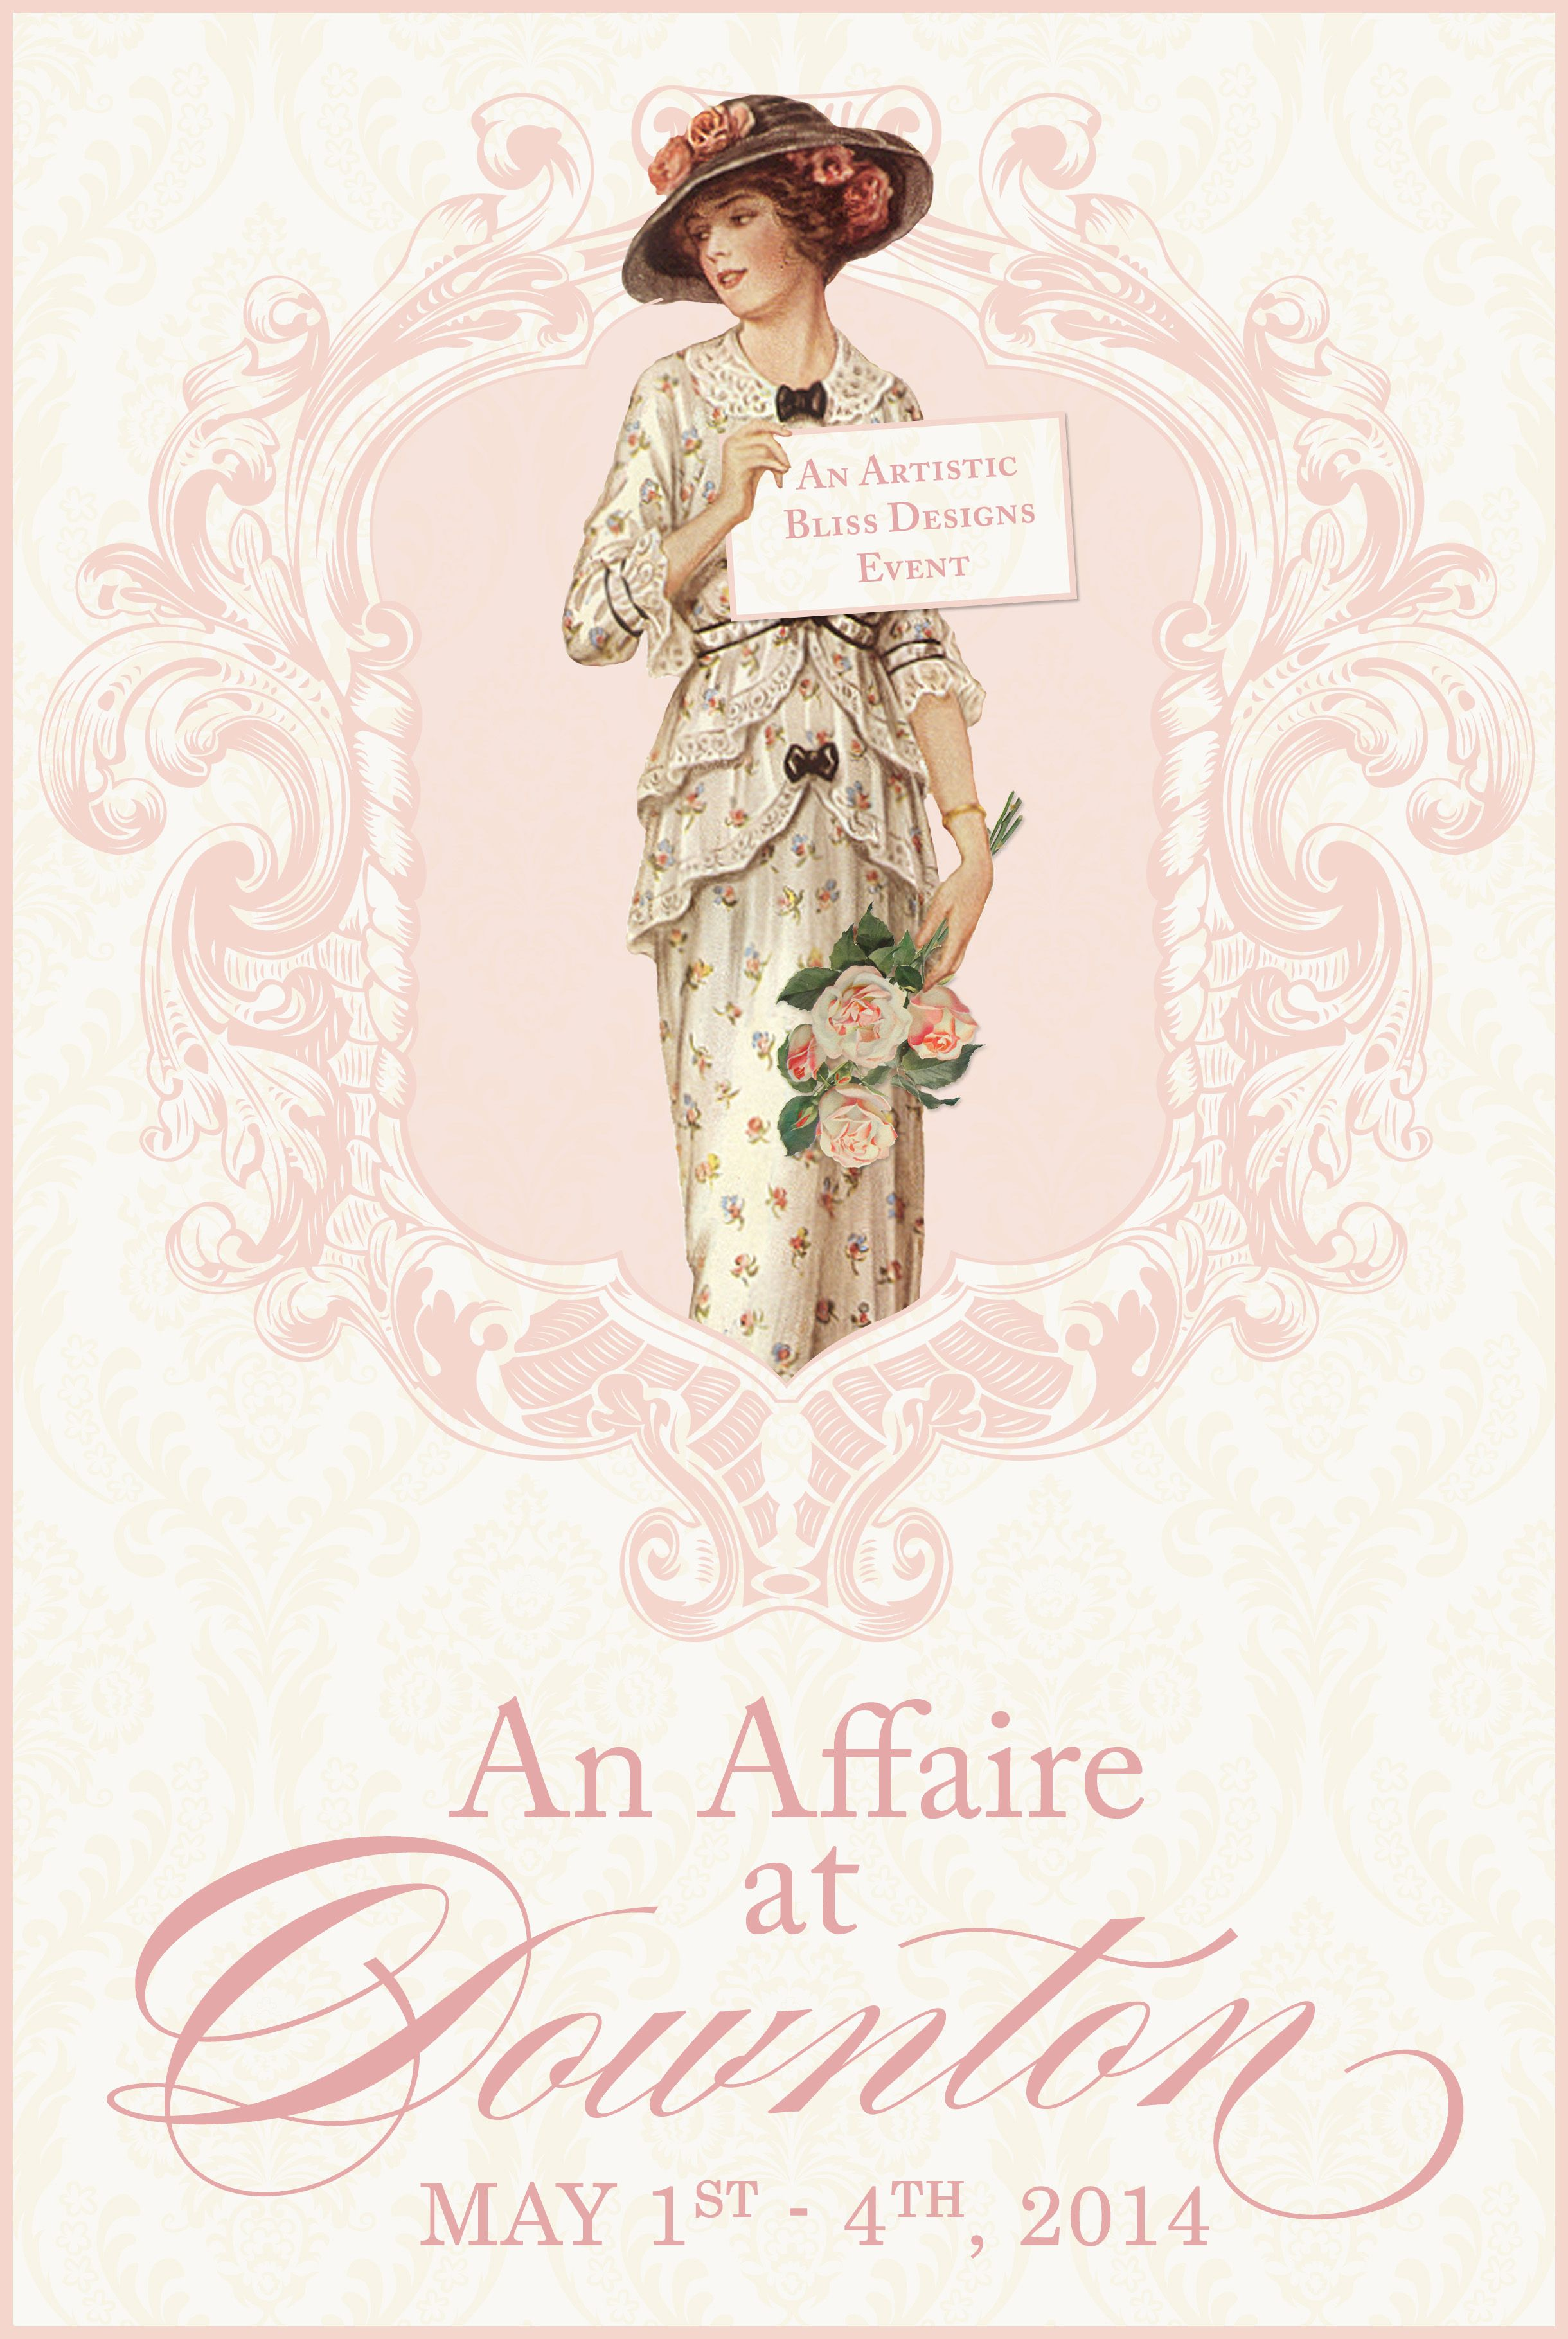 An Affaire at Downton will be an amazing mixed media creative event hosted by the lovely Kim Caldwell. I can't wait!